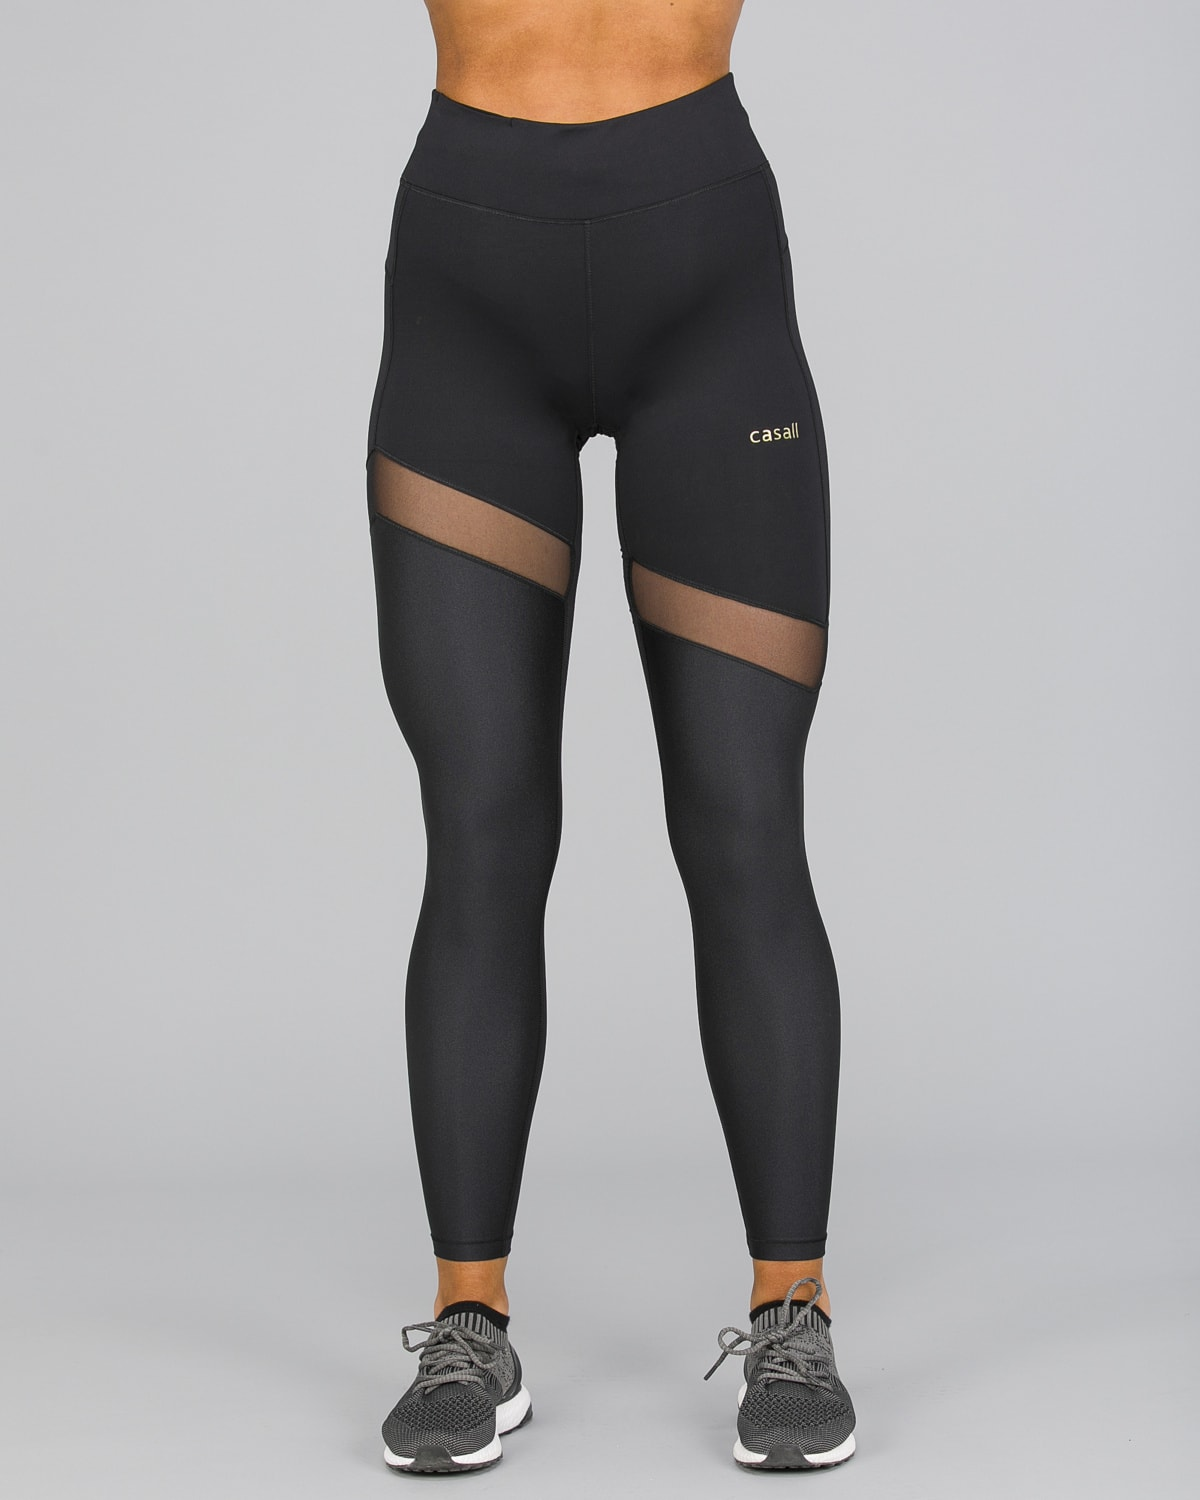 Casall Golden Lux 7:8 Tights6